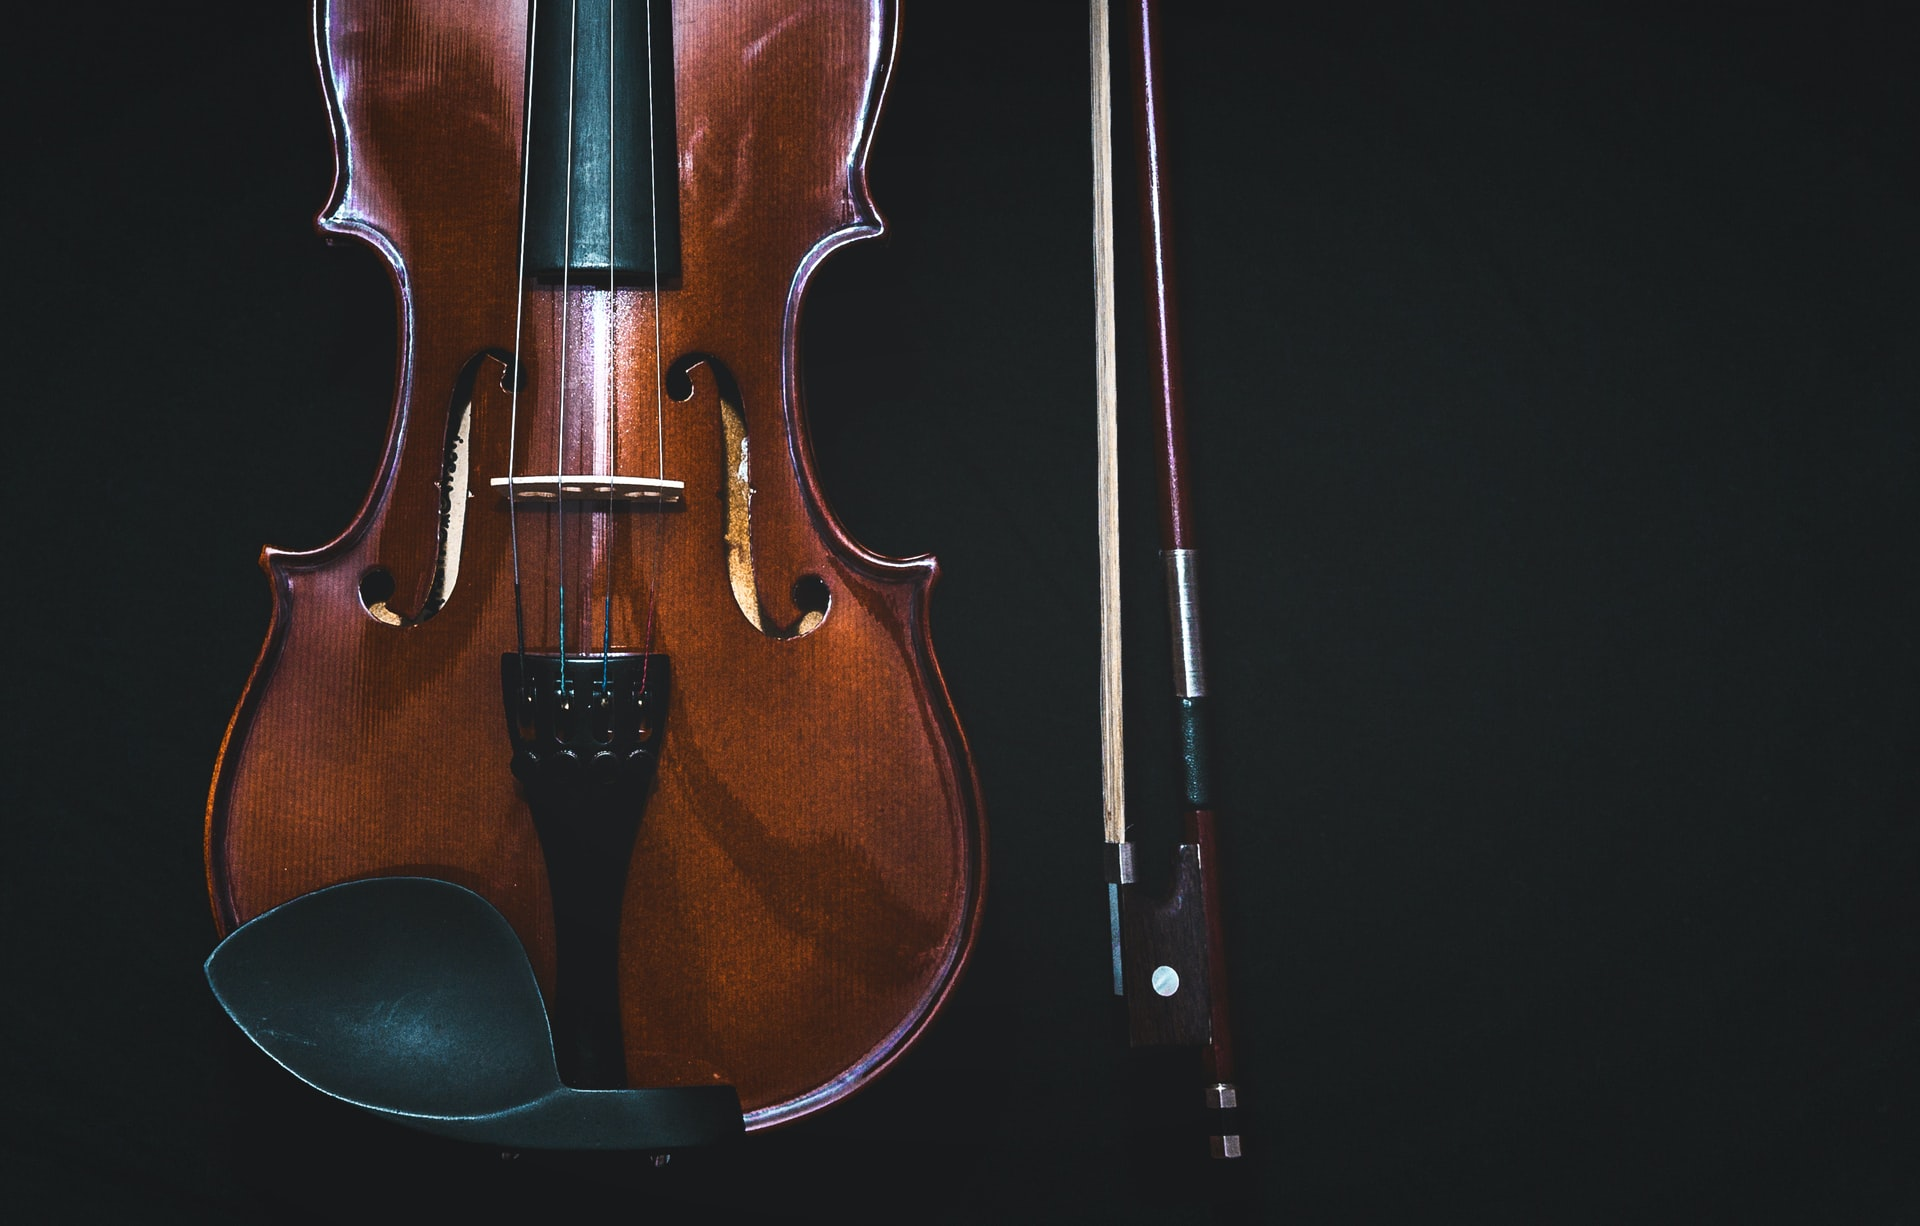 violin lessons for kids and adults near me in Memphis TN